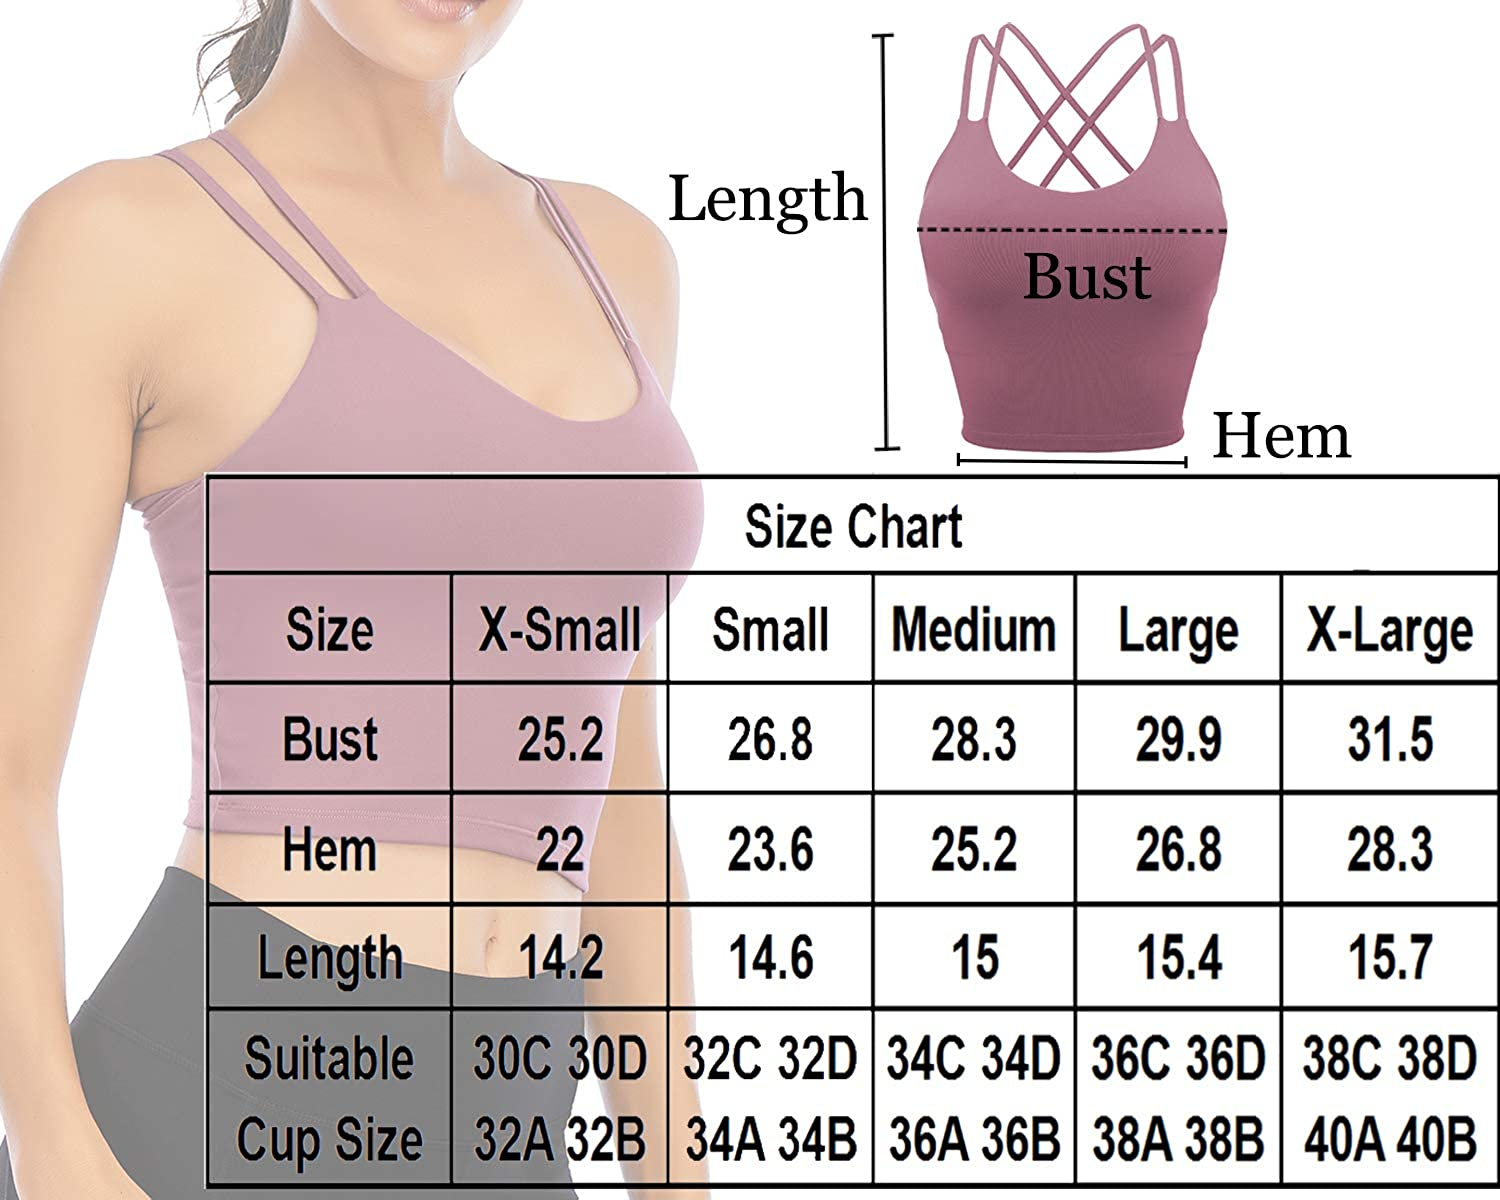 Padded Sports Bra for Women Workout Fitness Running Crop Yoga Tank Tops with Built in Bra Camisole Longline Shirts